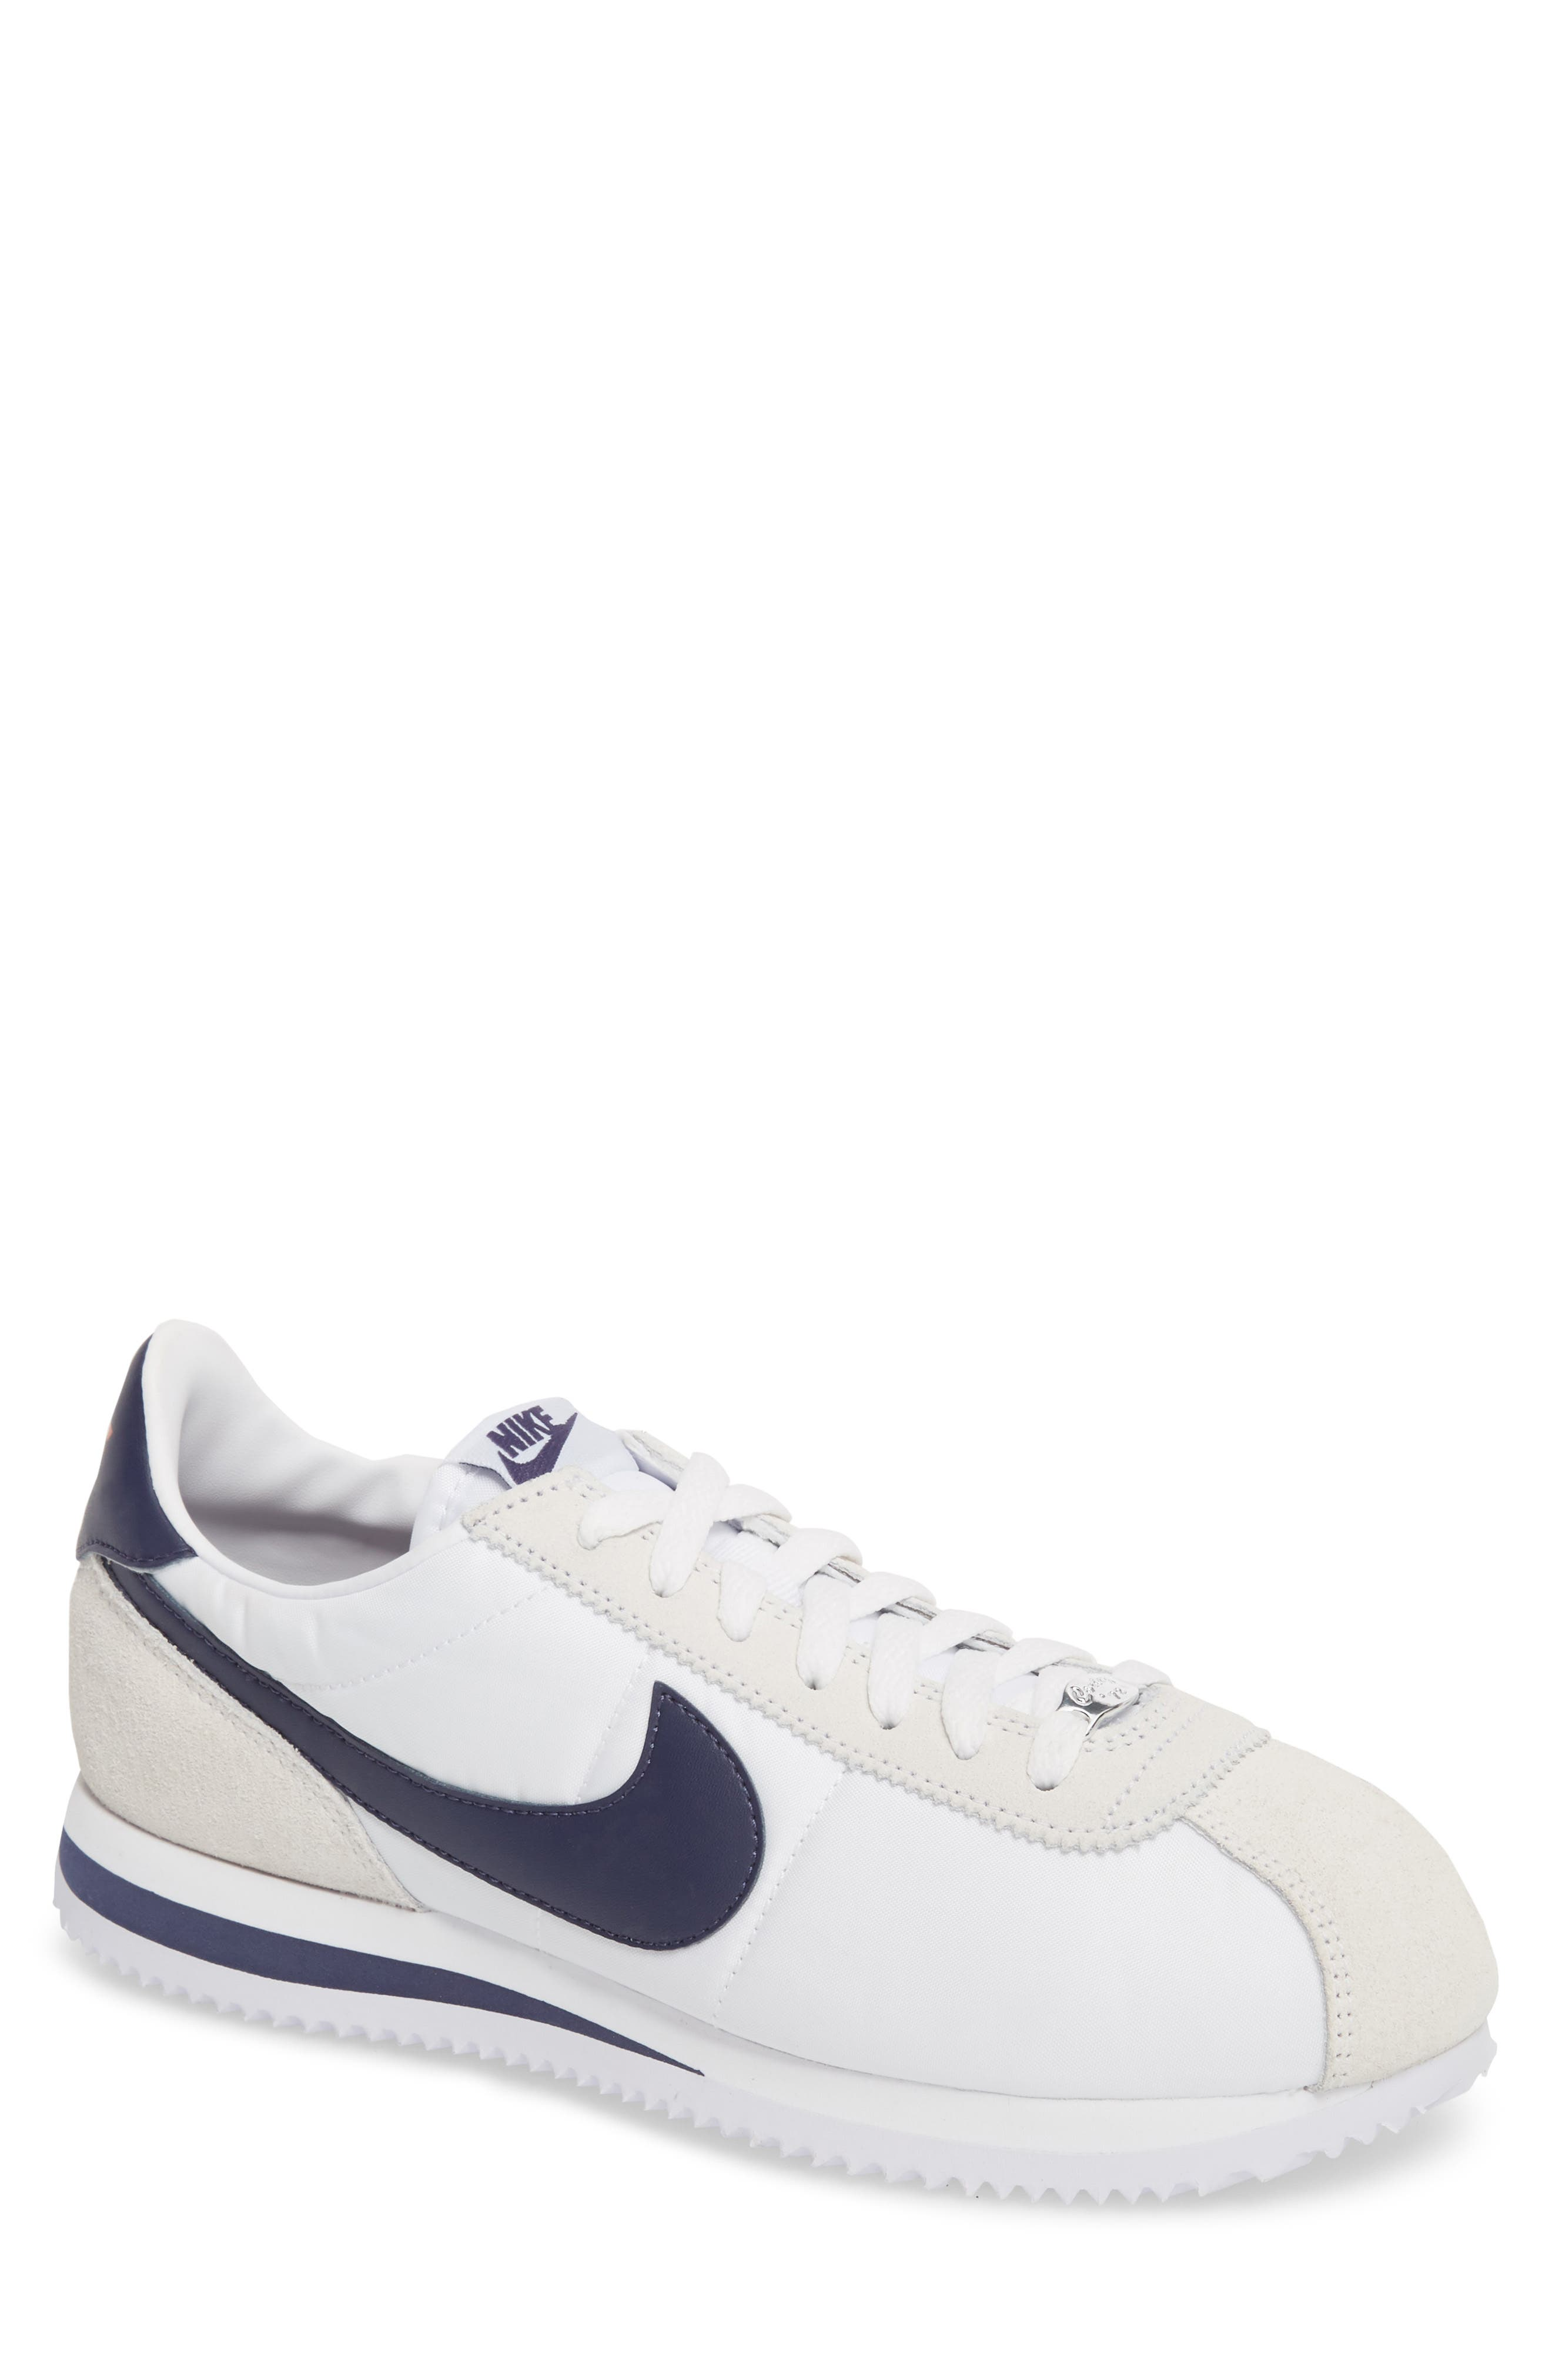 Cortez Basic Nylon Sneaker,                             Main thumbnail 1, color,                             102